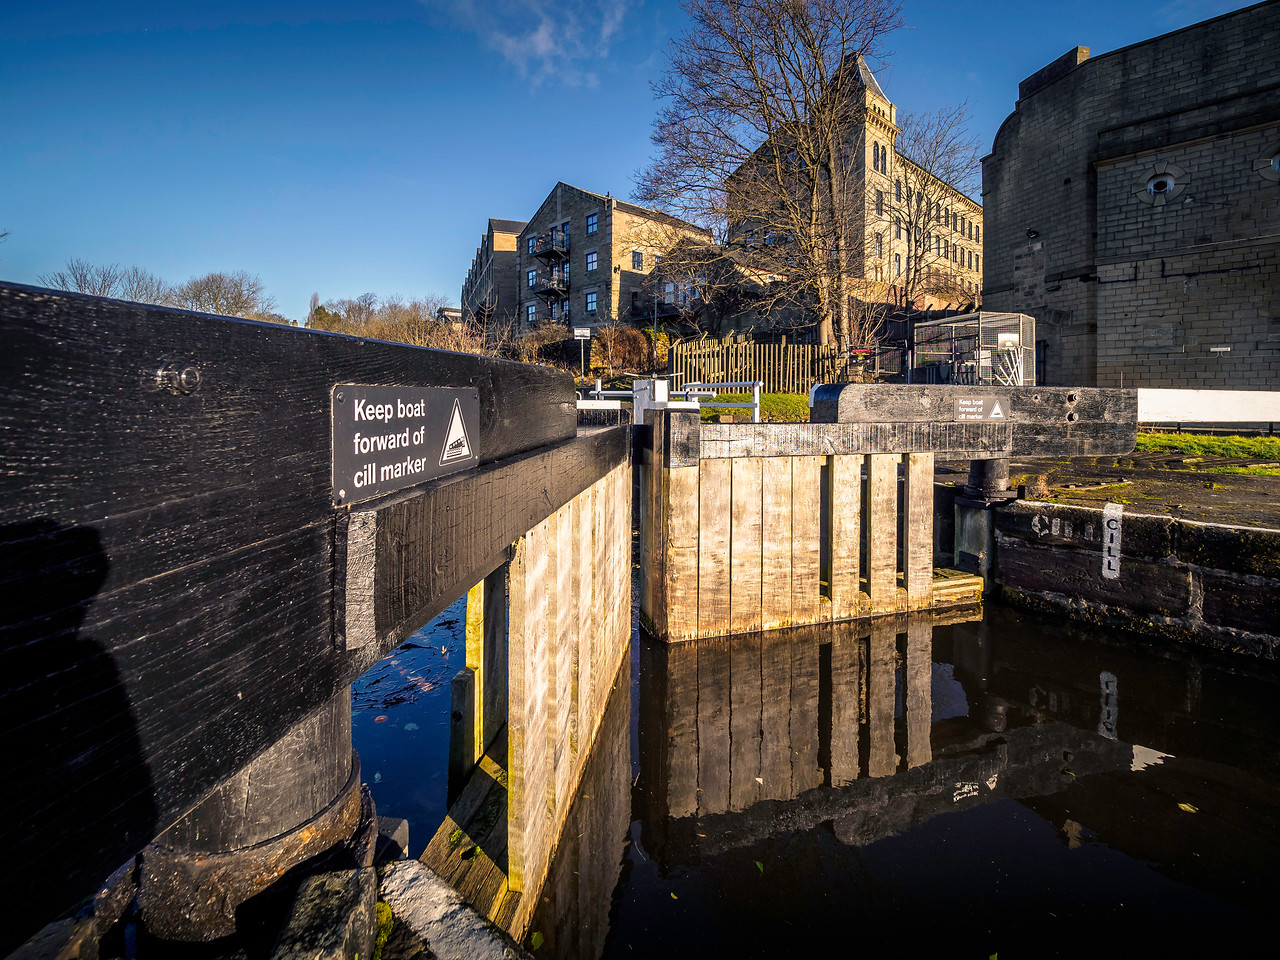 Dowley Gap Locks, Bingley